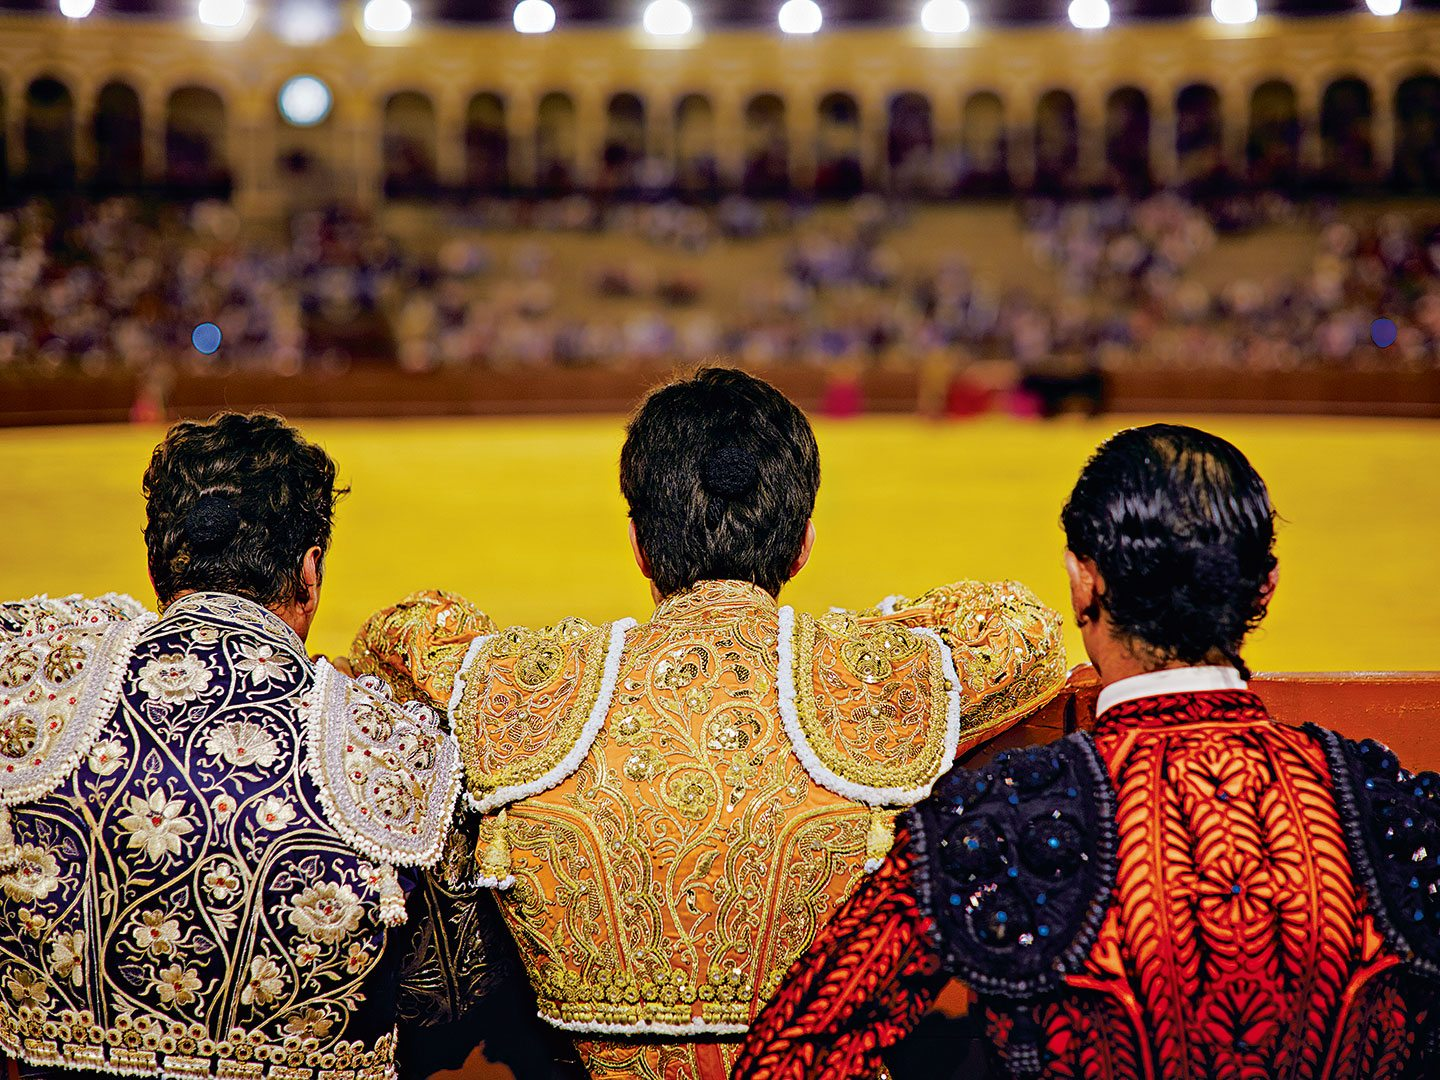 Bullfighting isn't a sport, but an art and a spectacle. Photo: John Kernick